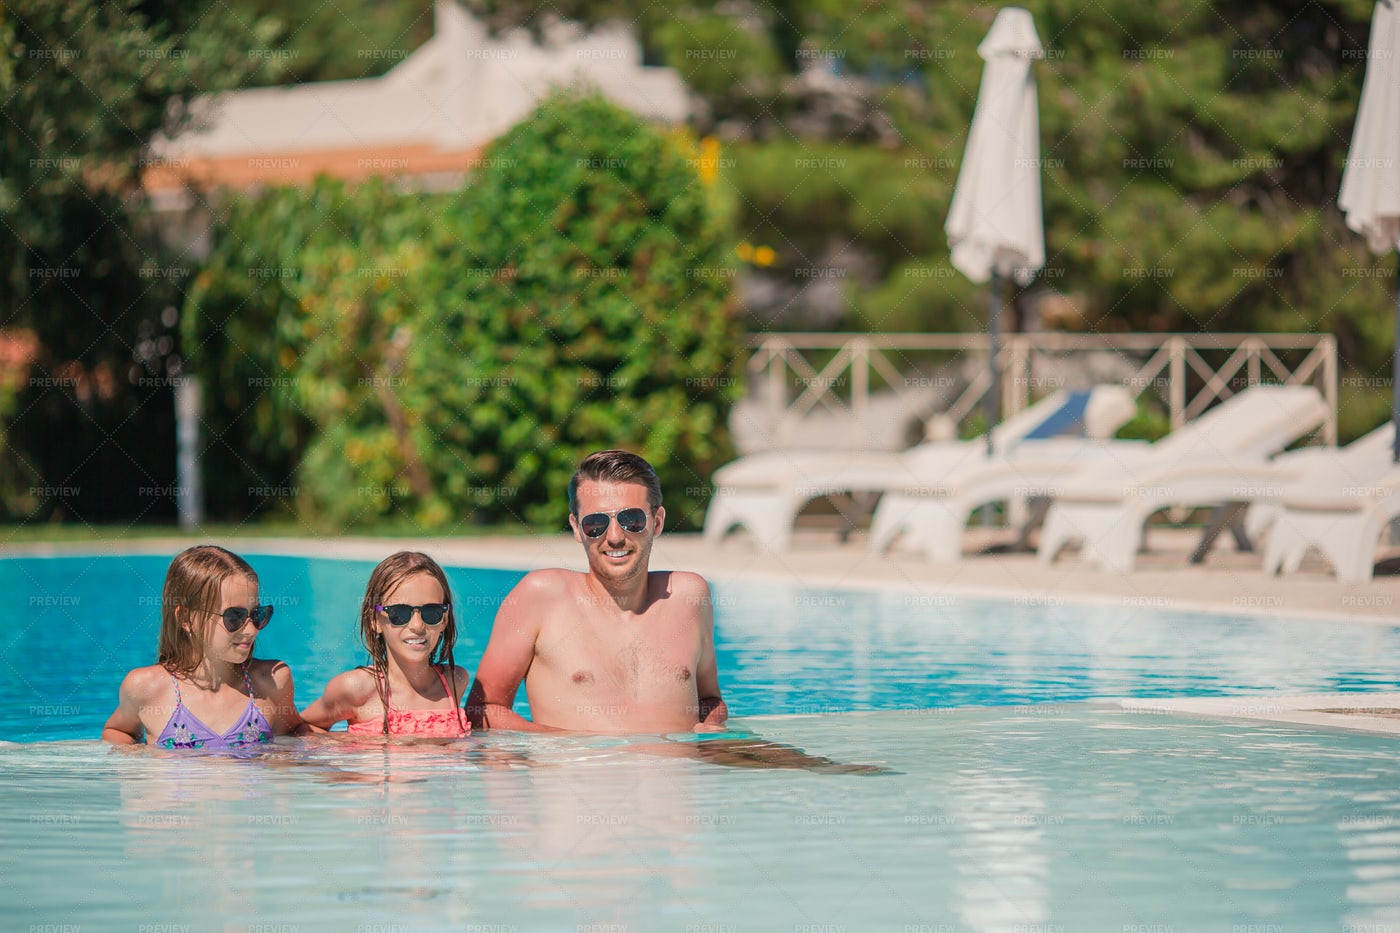 Family In Outdoor Resort Pool: Stock Photos